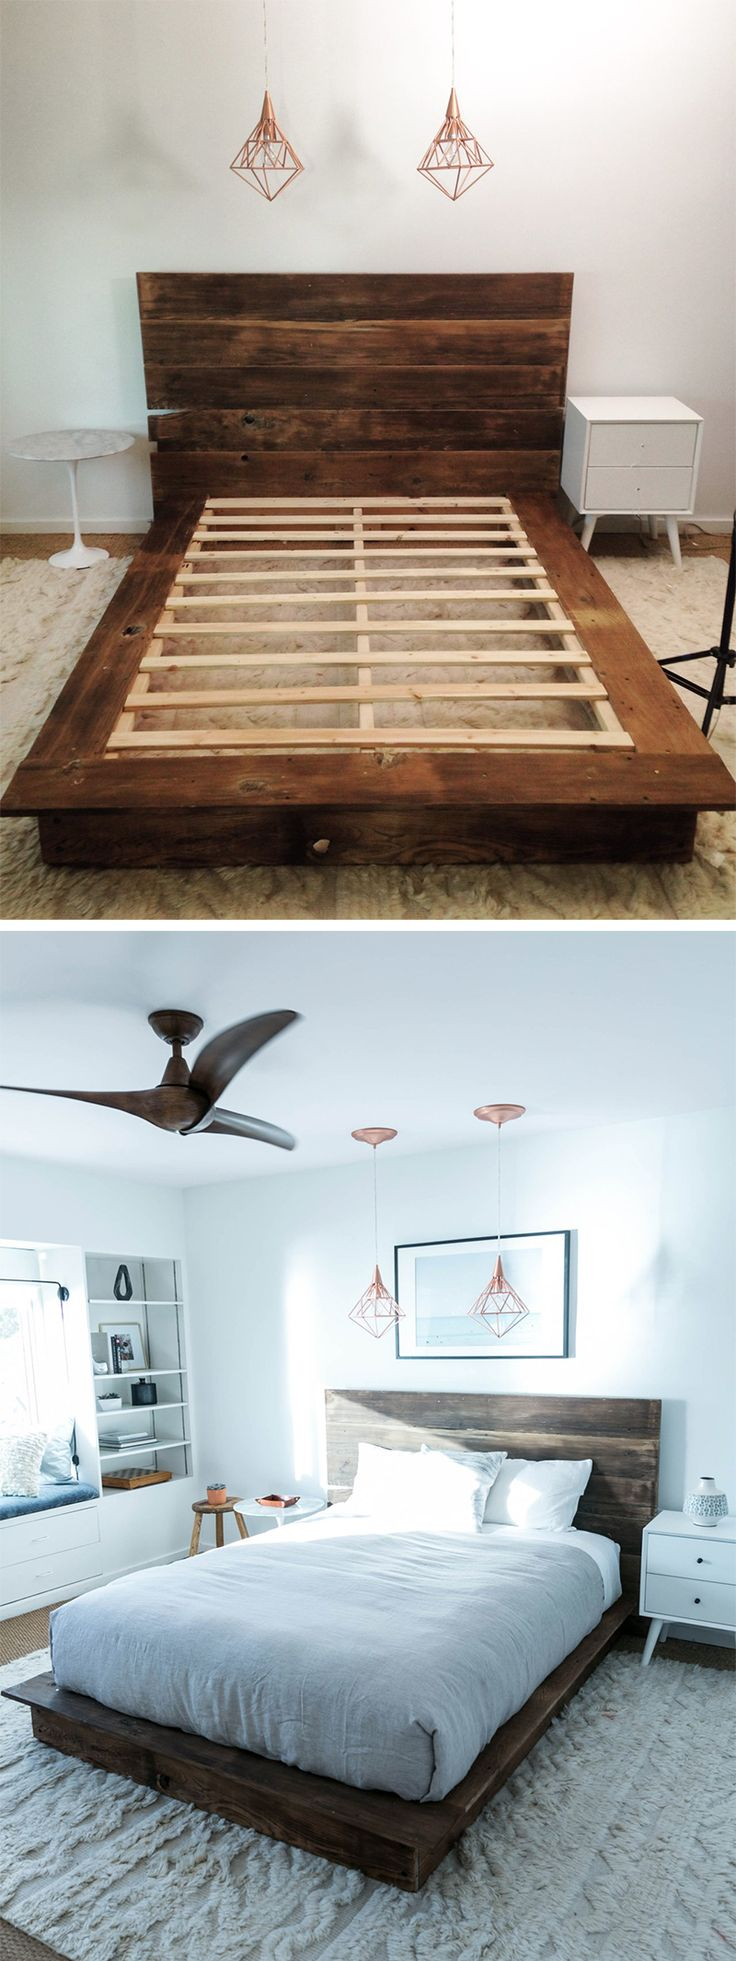 Best 25+ Beds ideas on Pinterest | Bed lights, DIY 20s decorations ...